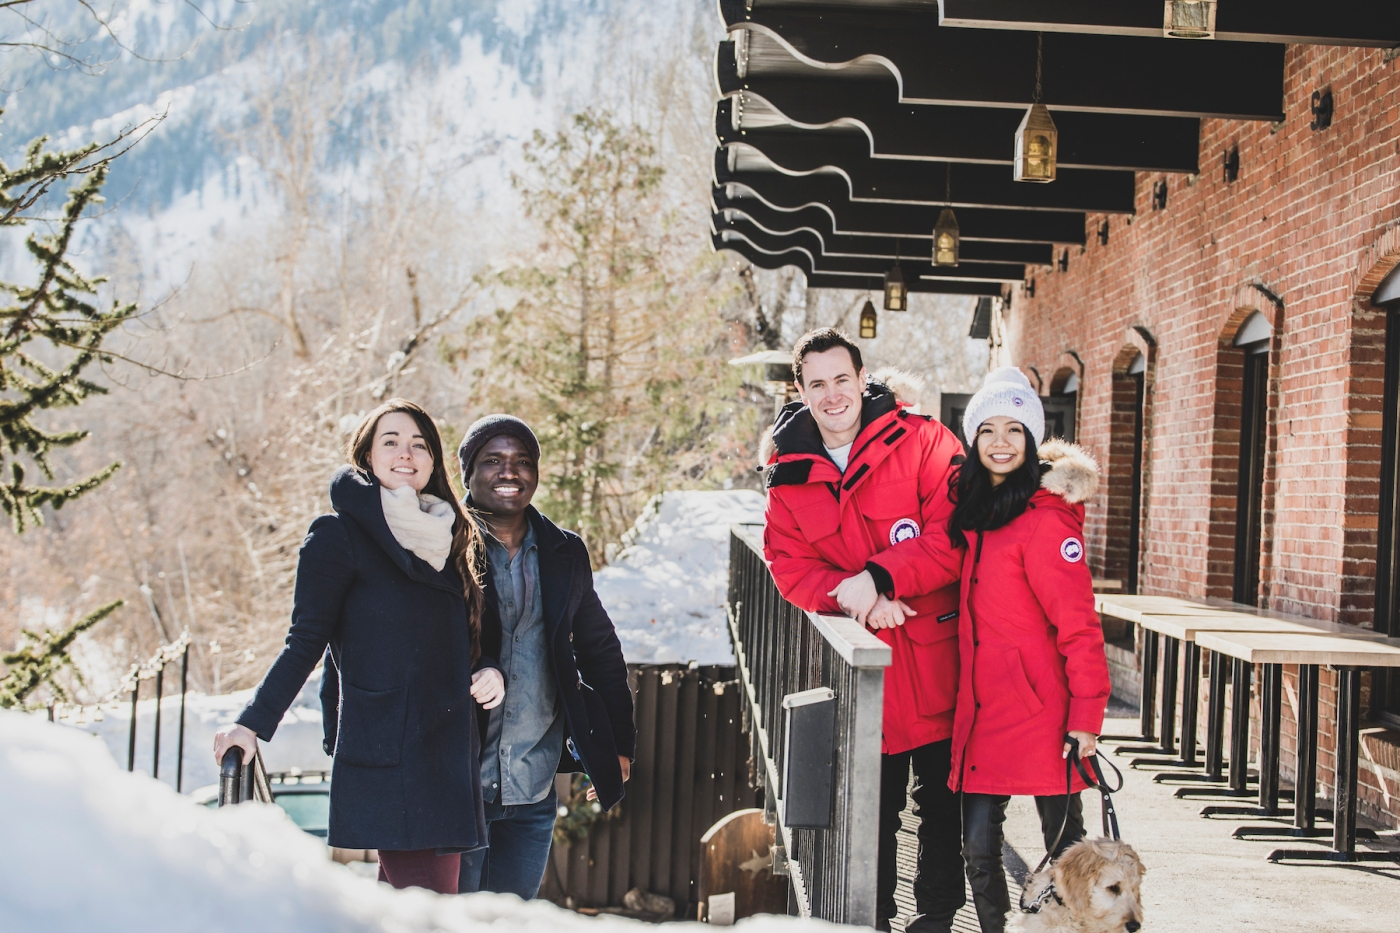 leavenworth_elopement_by_jane_speleers_photography_seattle_photographer_2017_winter_snow_joy_and_jason_rendezvous_ranch_cashmere_leavenworth_nahahum_canyon_all_rights_reserveddsc_9479